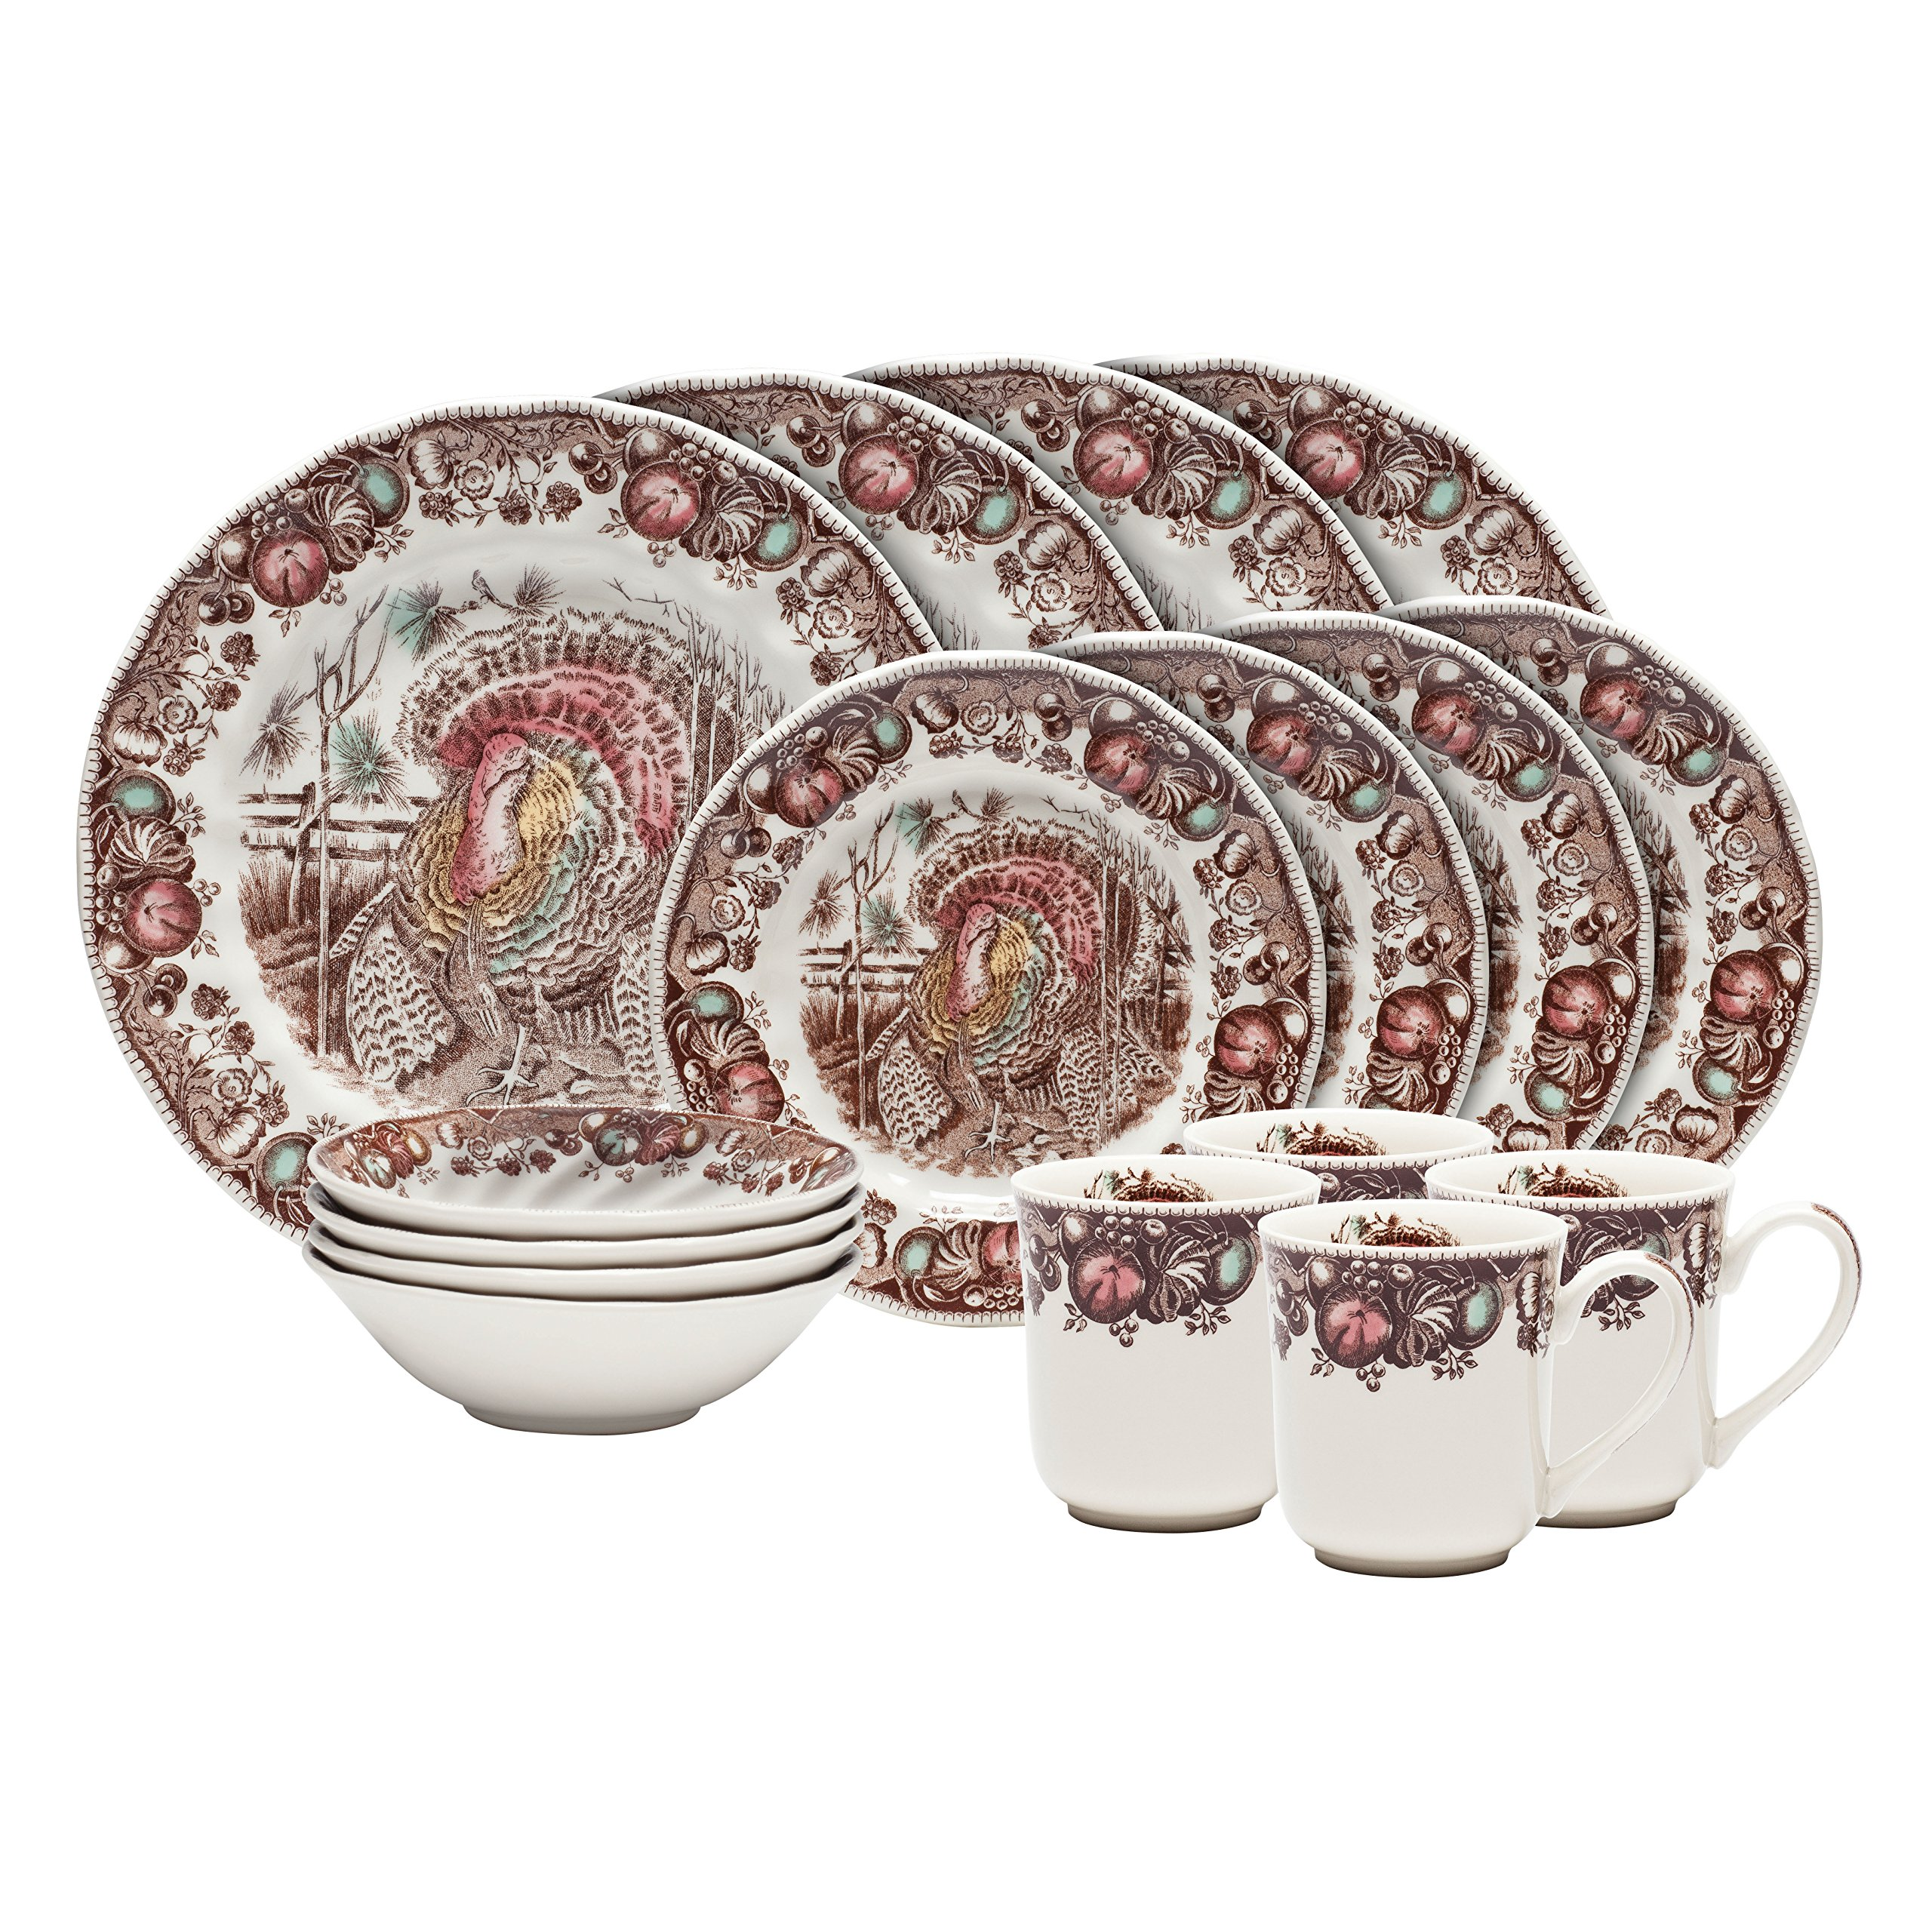 Johnson Brothers 16-Piece His Majesty Dinner Set, Multicolored by Johnson Brothers (Image #1)